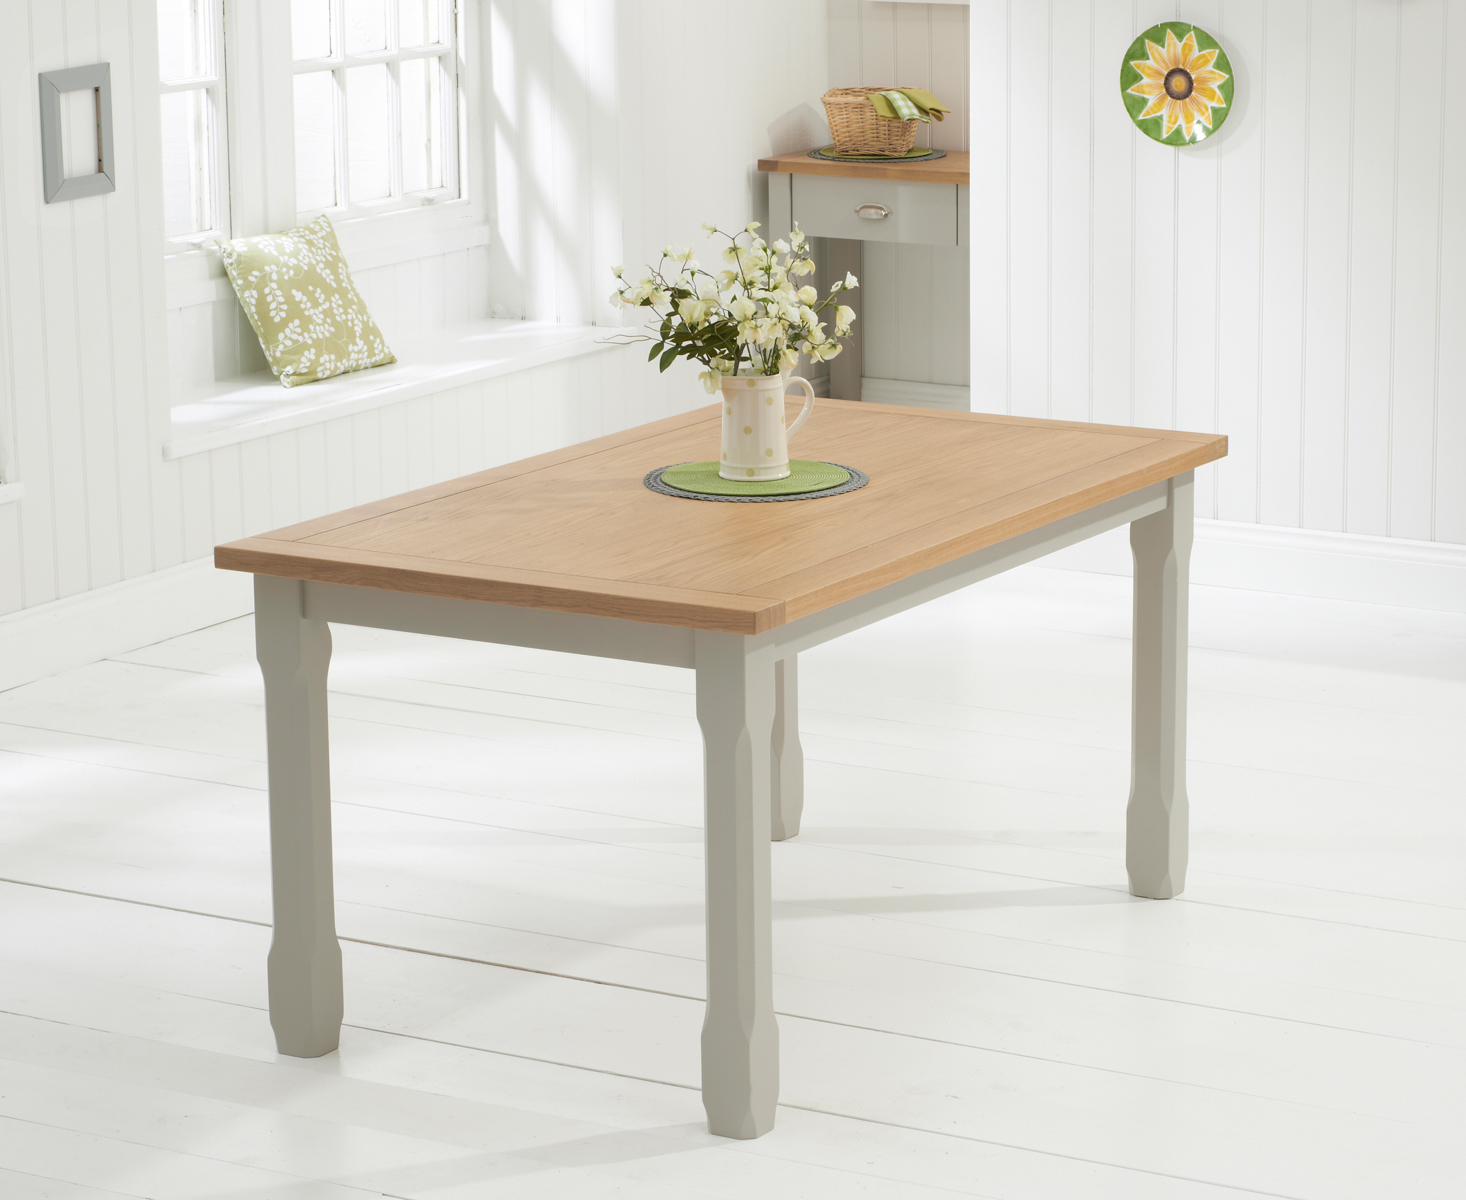 Somerset 130cm Oak and Grey Dining Table